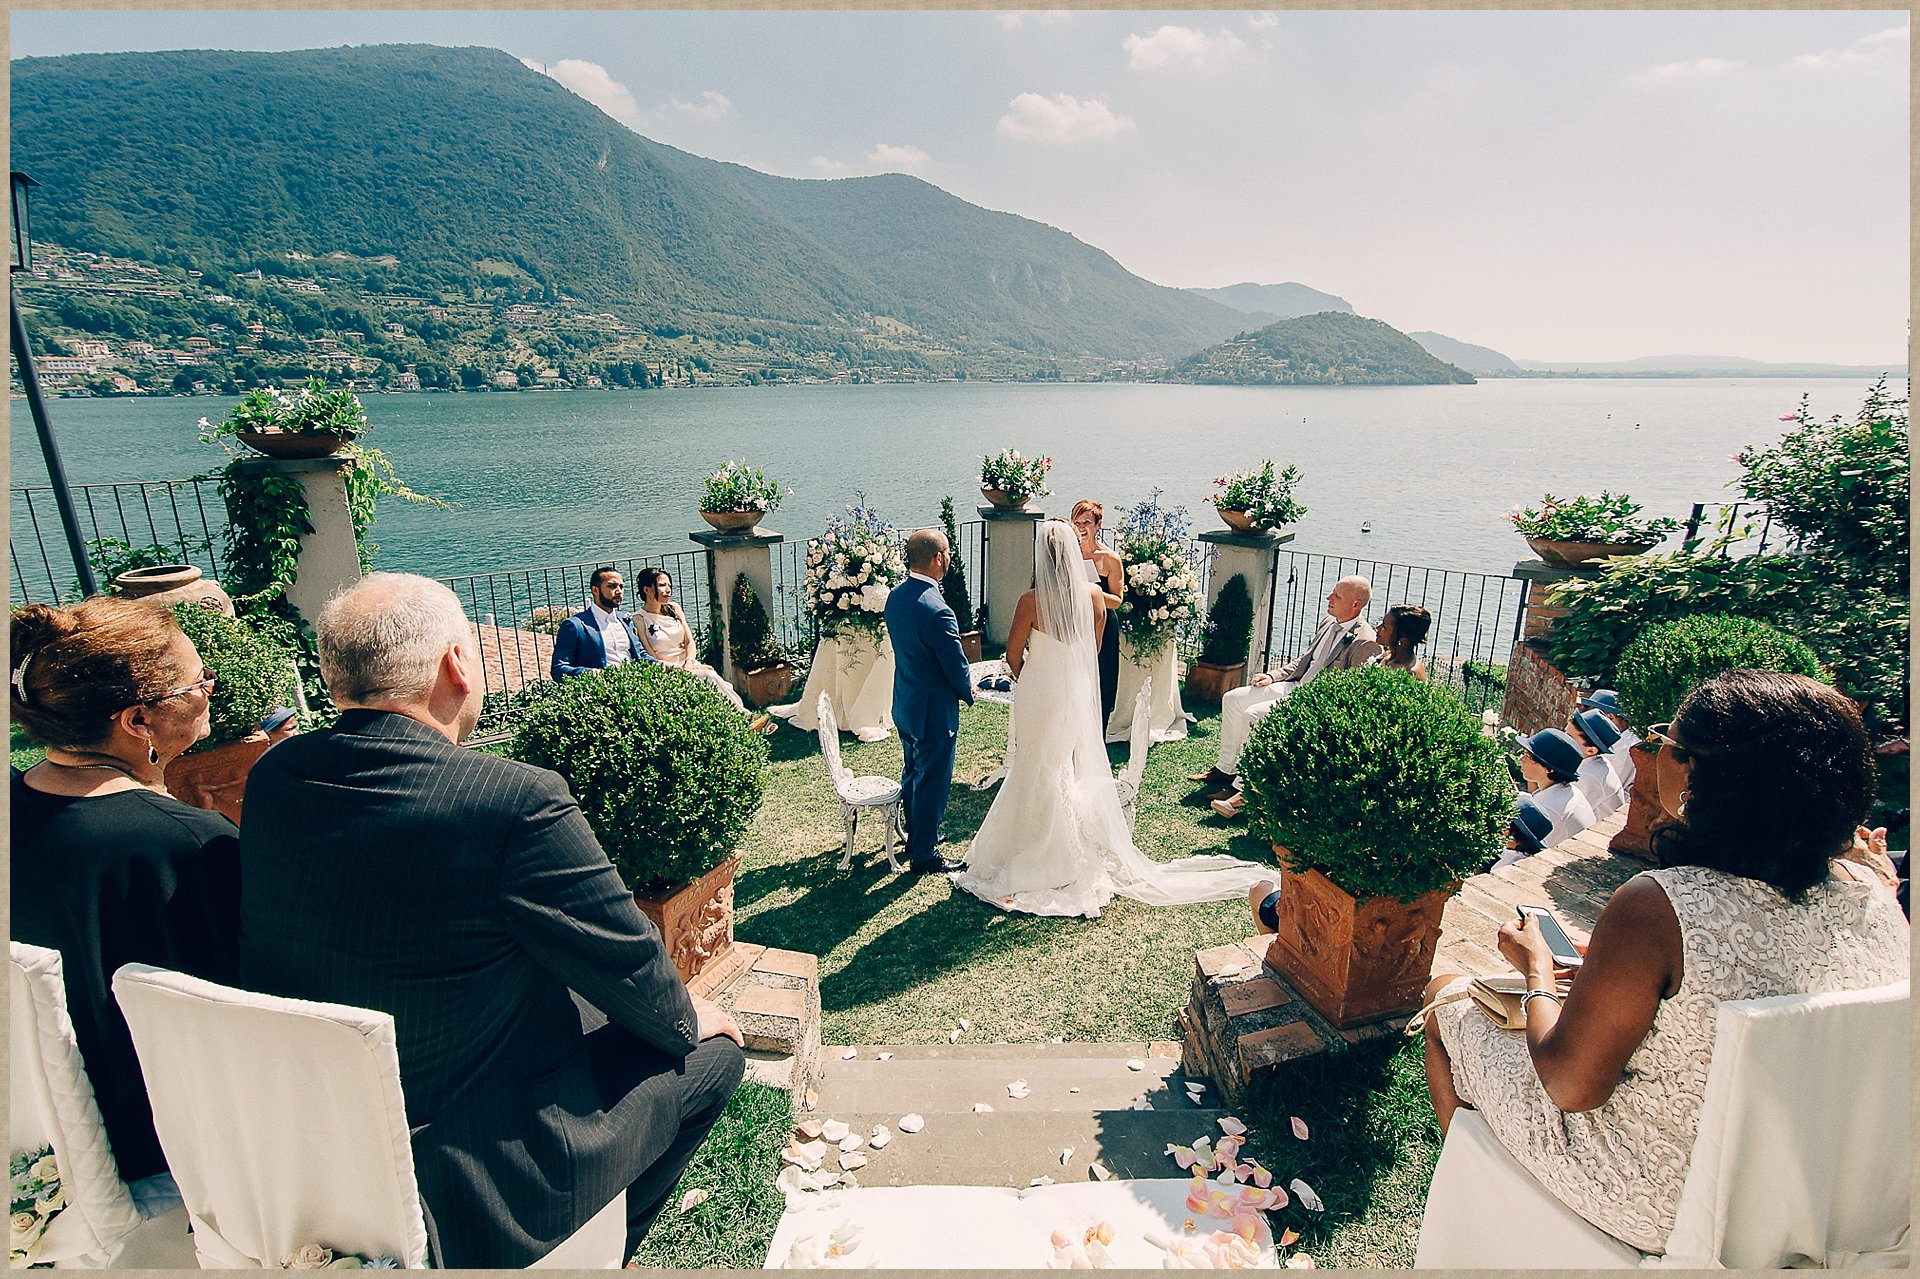 castello-oldofredi-wedding-lake-iseo-sarahferrara-062.jpg